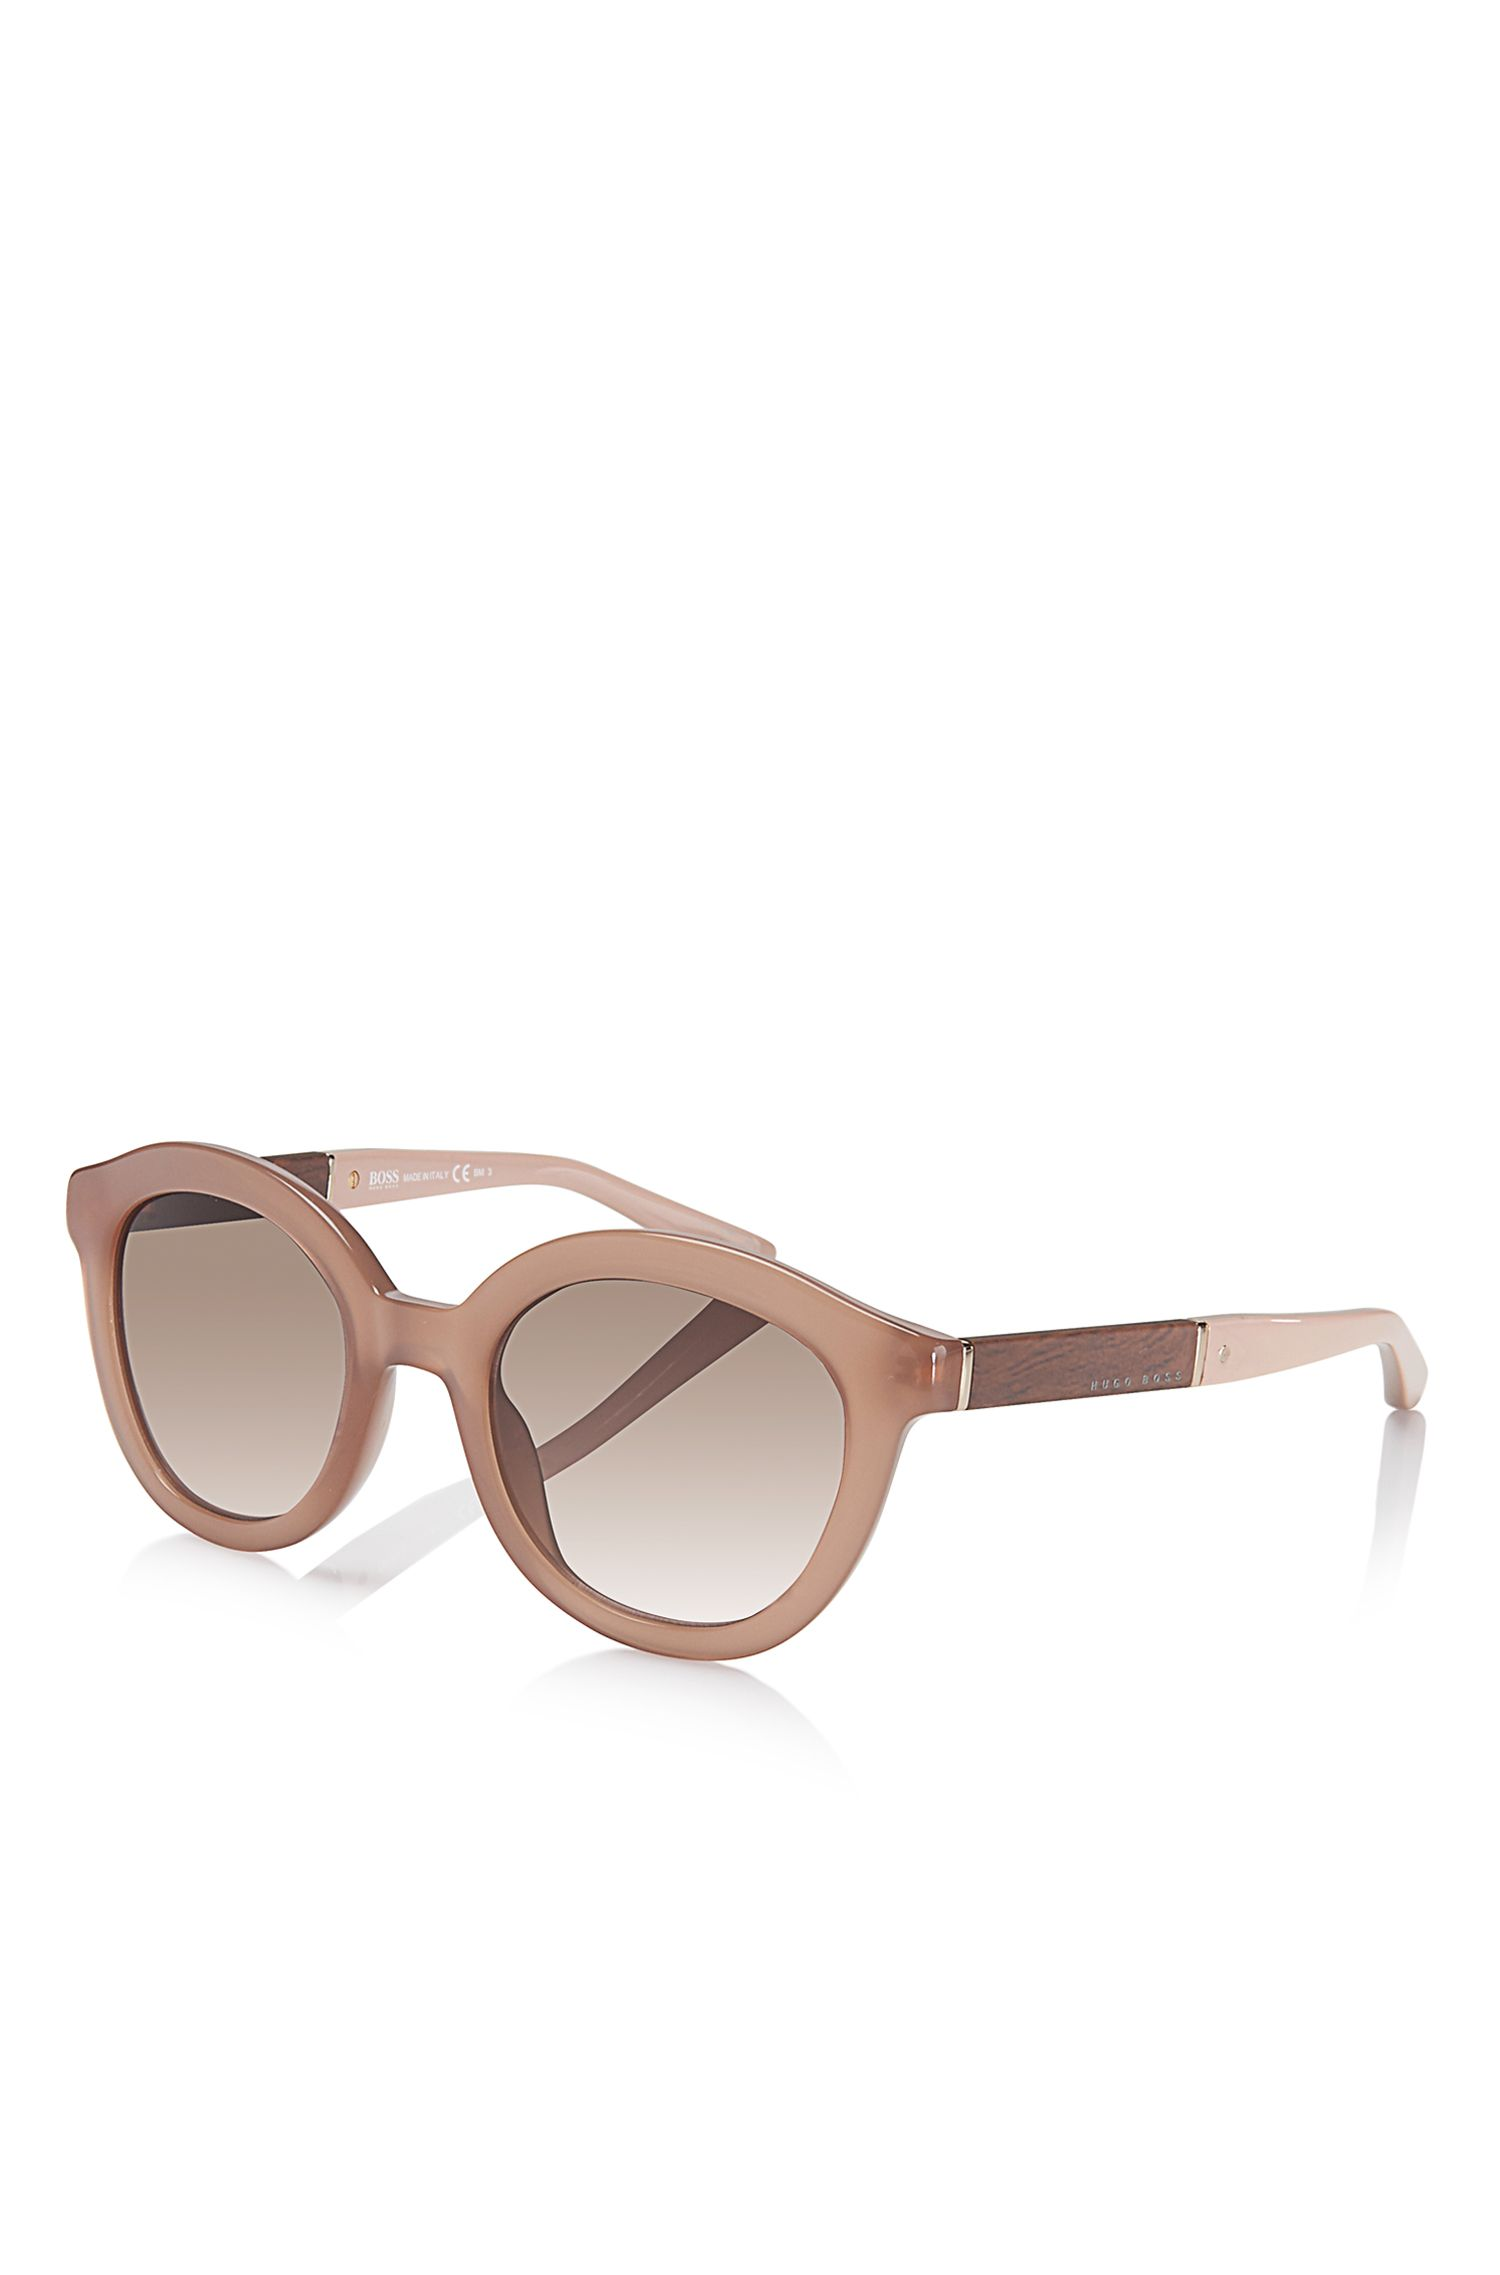 Rounded Vintage Wood Detailed Sunglasses  | BOSS 0662S, Assorted-Pre-Pack